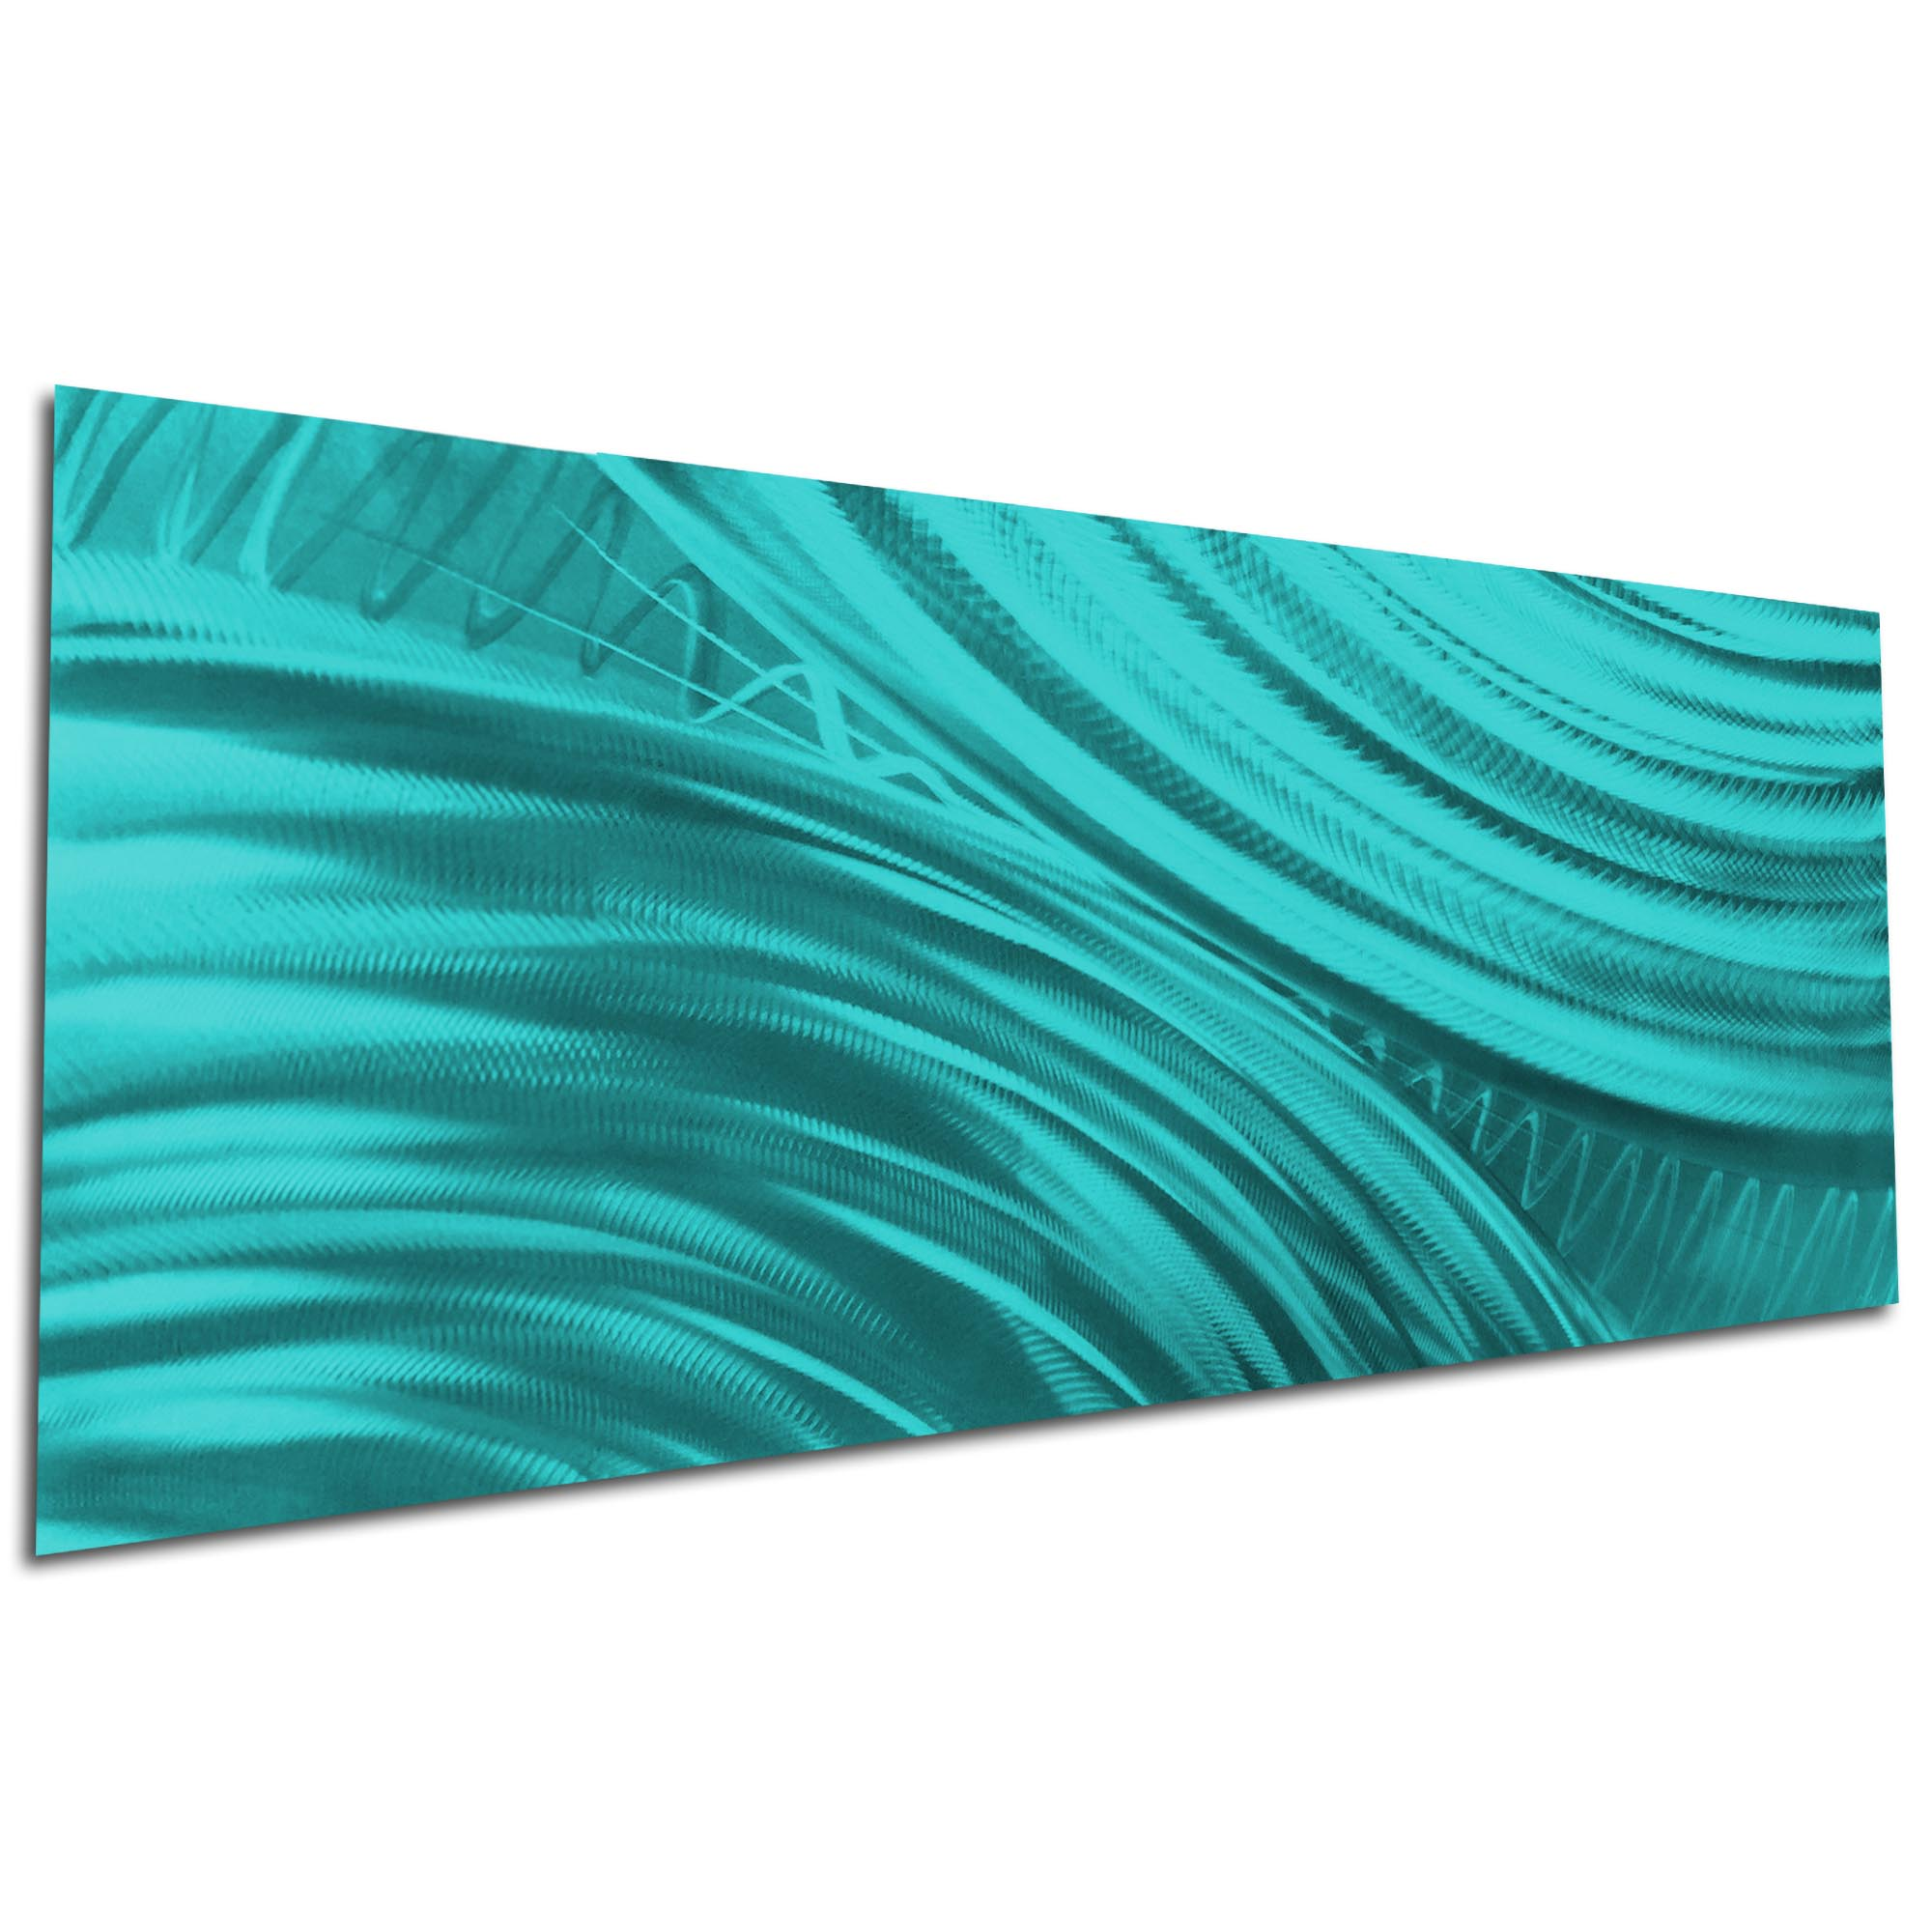 Moment of Impact Teal by Helena Martin - Original Abstract Art on Ground and Painted Metal - Image 3